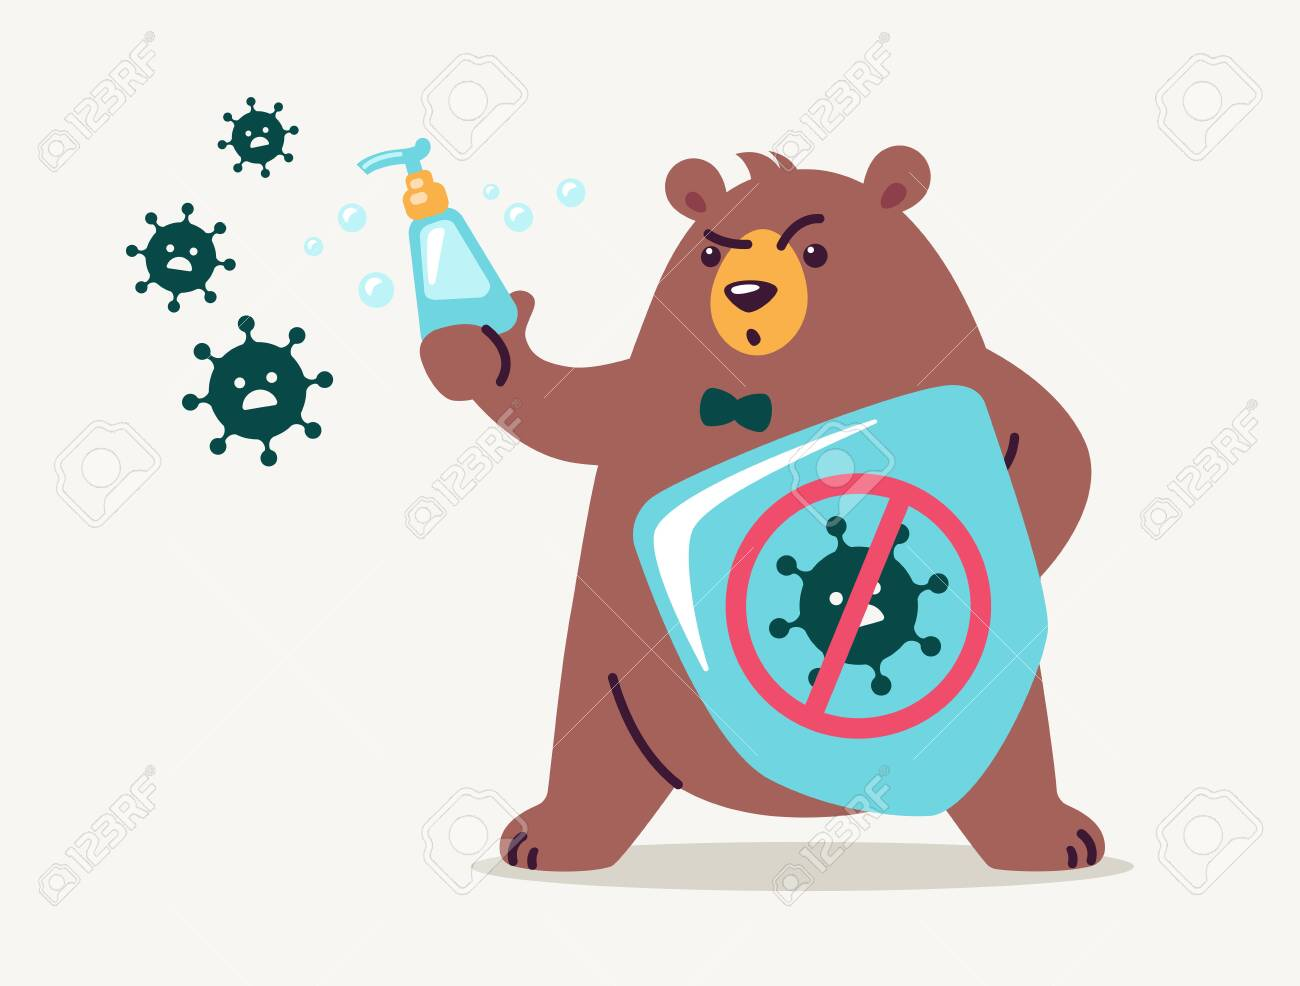 Virus infection prevention concept for kids - washing hands and using hand sanitizers. Cute bear cartoon holds shield and soap to fight and prevent virus. Medical health vector illustration flat style - 146827616